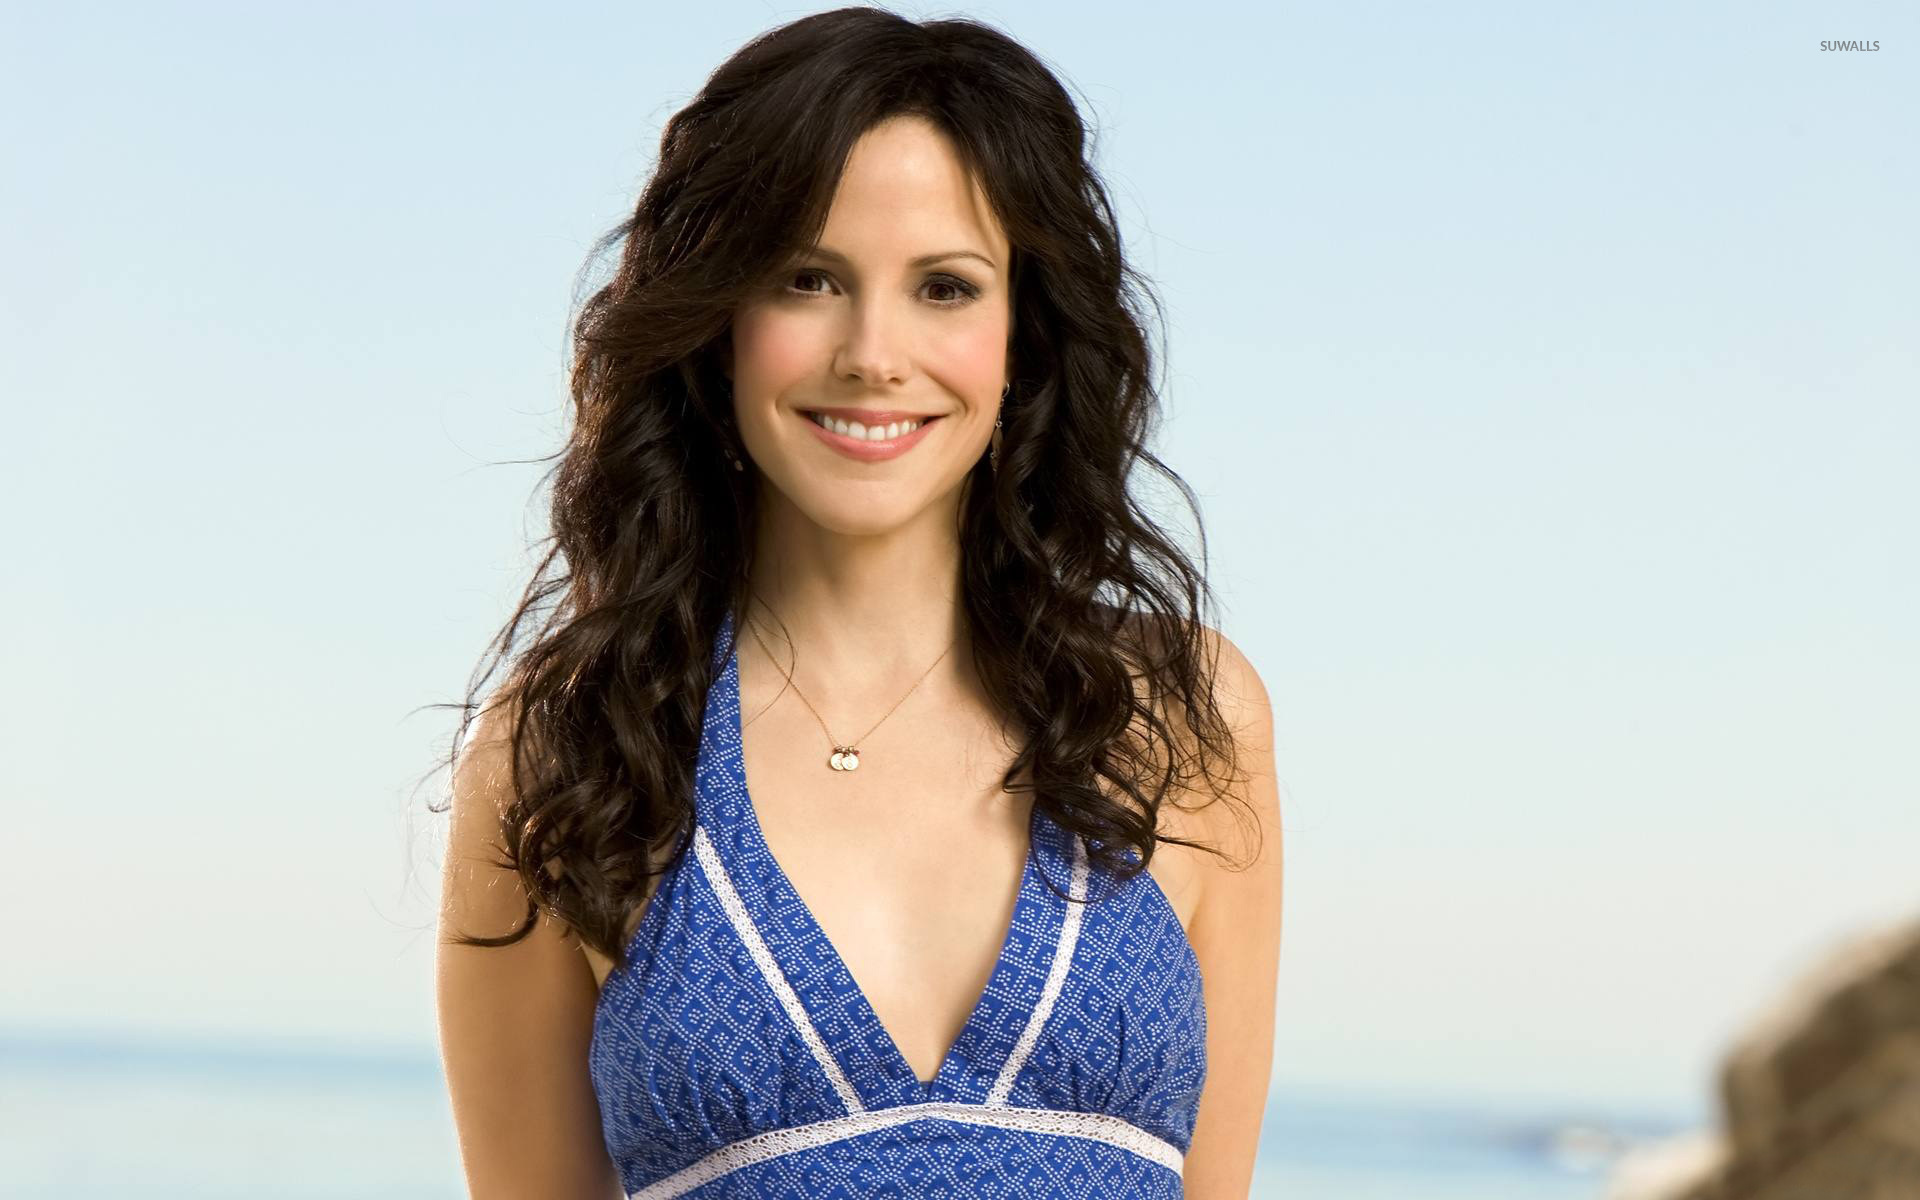 Mary louise parker wallpaper celebrity wallpapers 6634 mary louise parker wallpaper voltagebd Choice Image